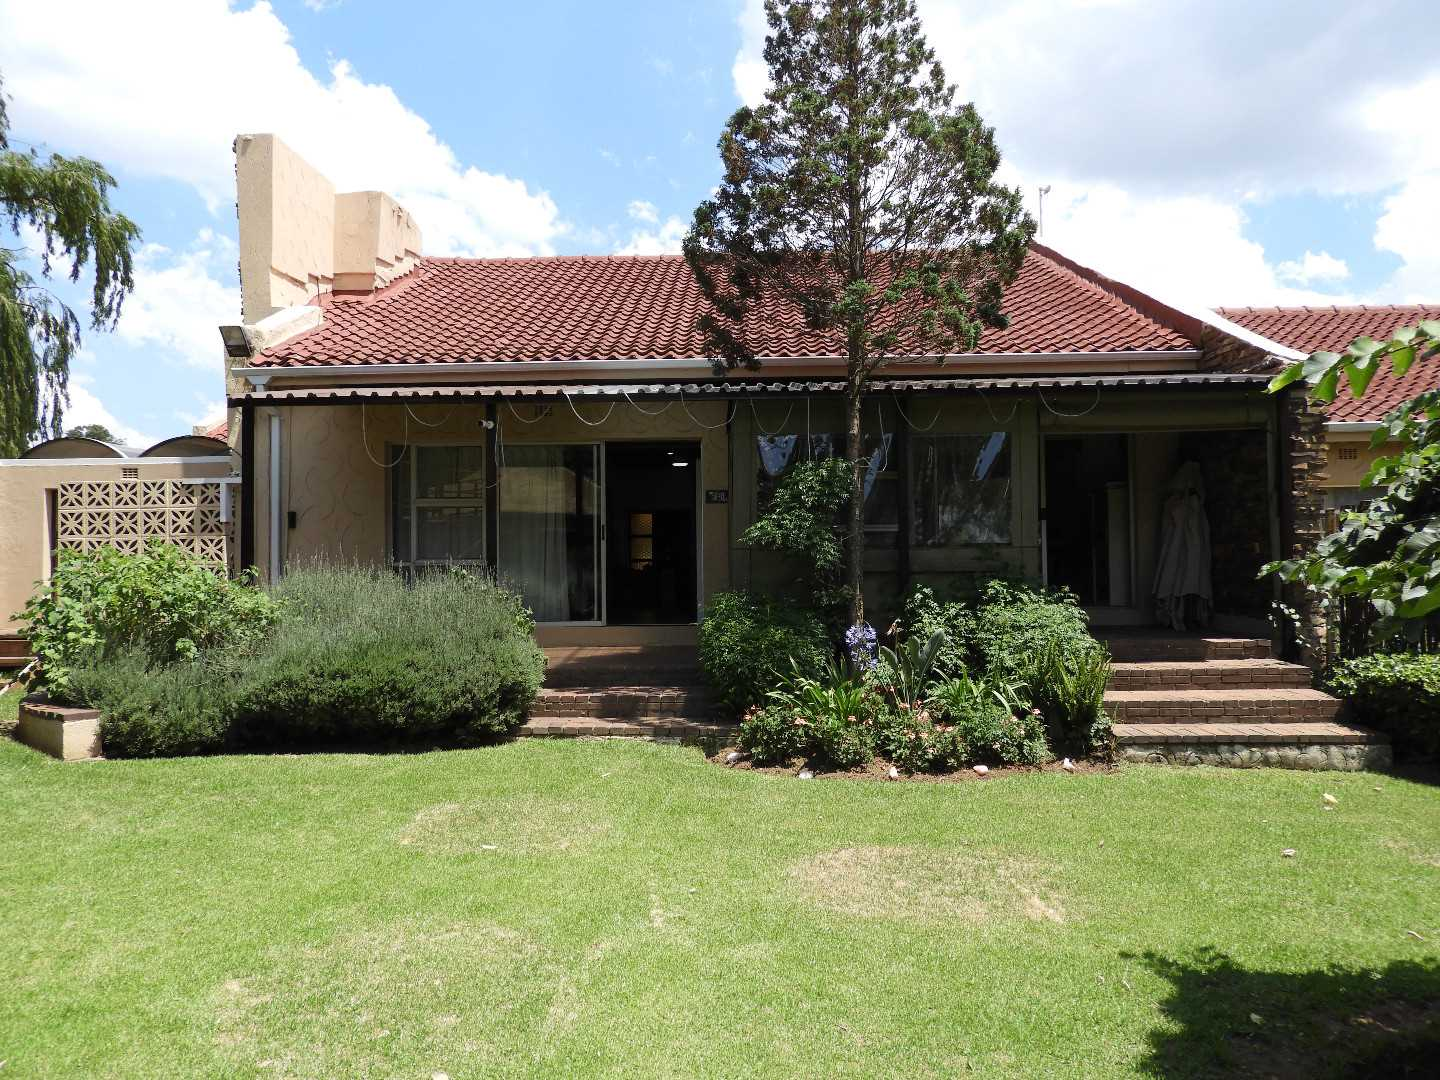 20234sqm plot with 3 bedroom house and cottage.